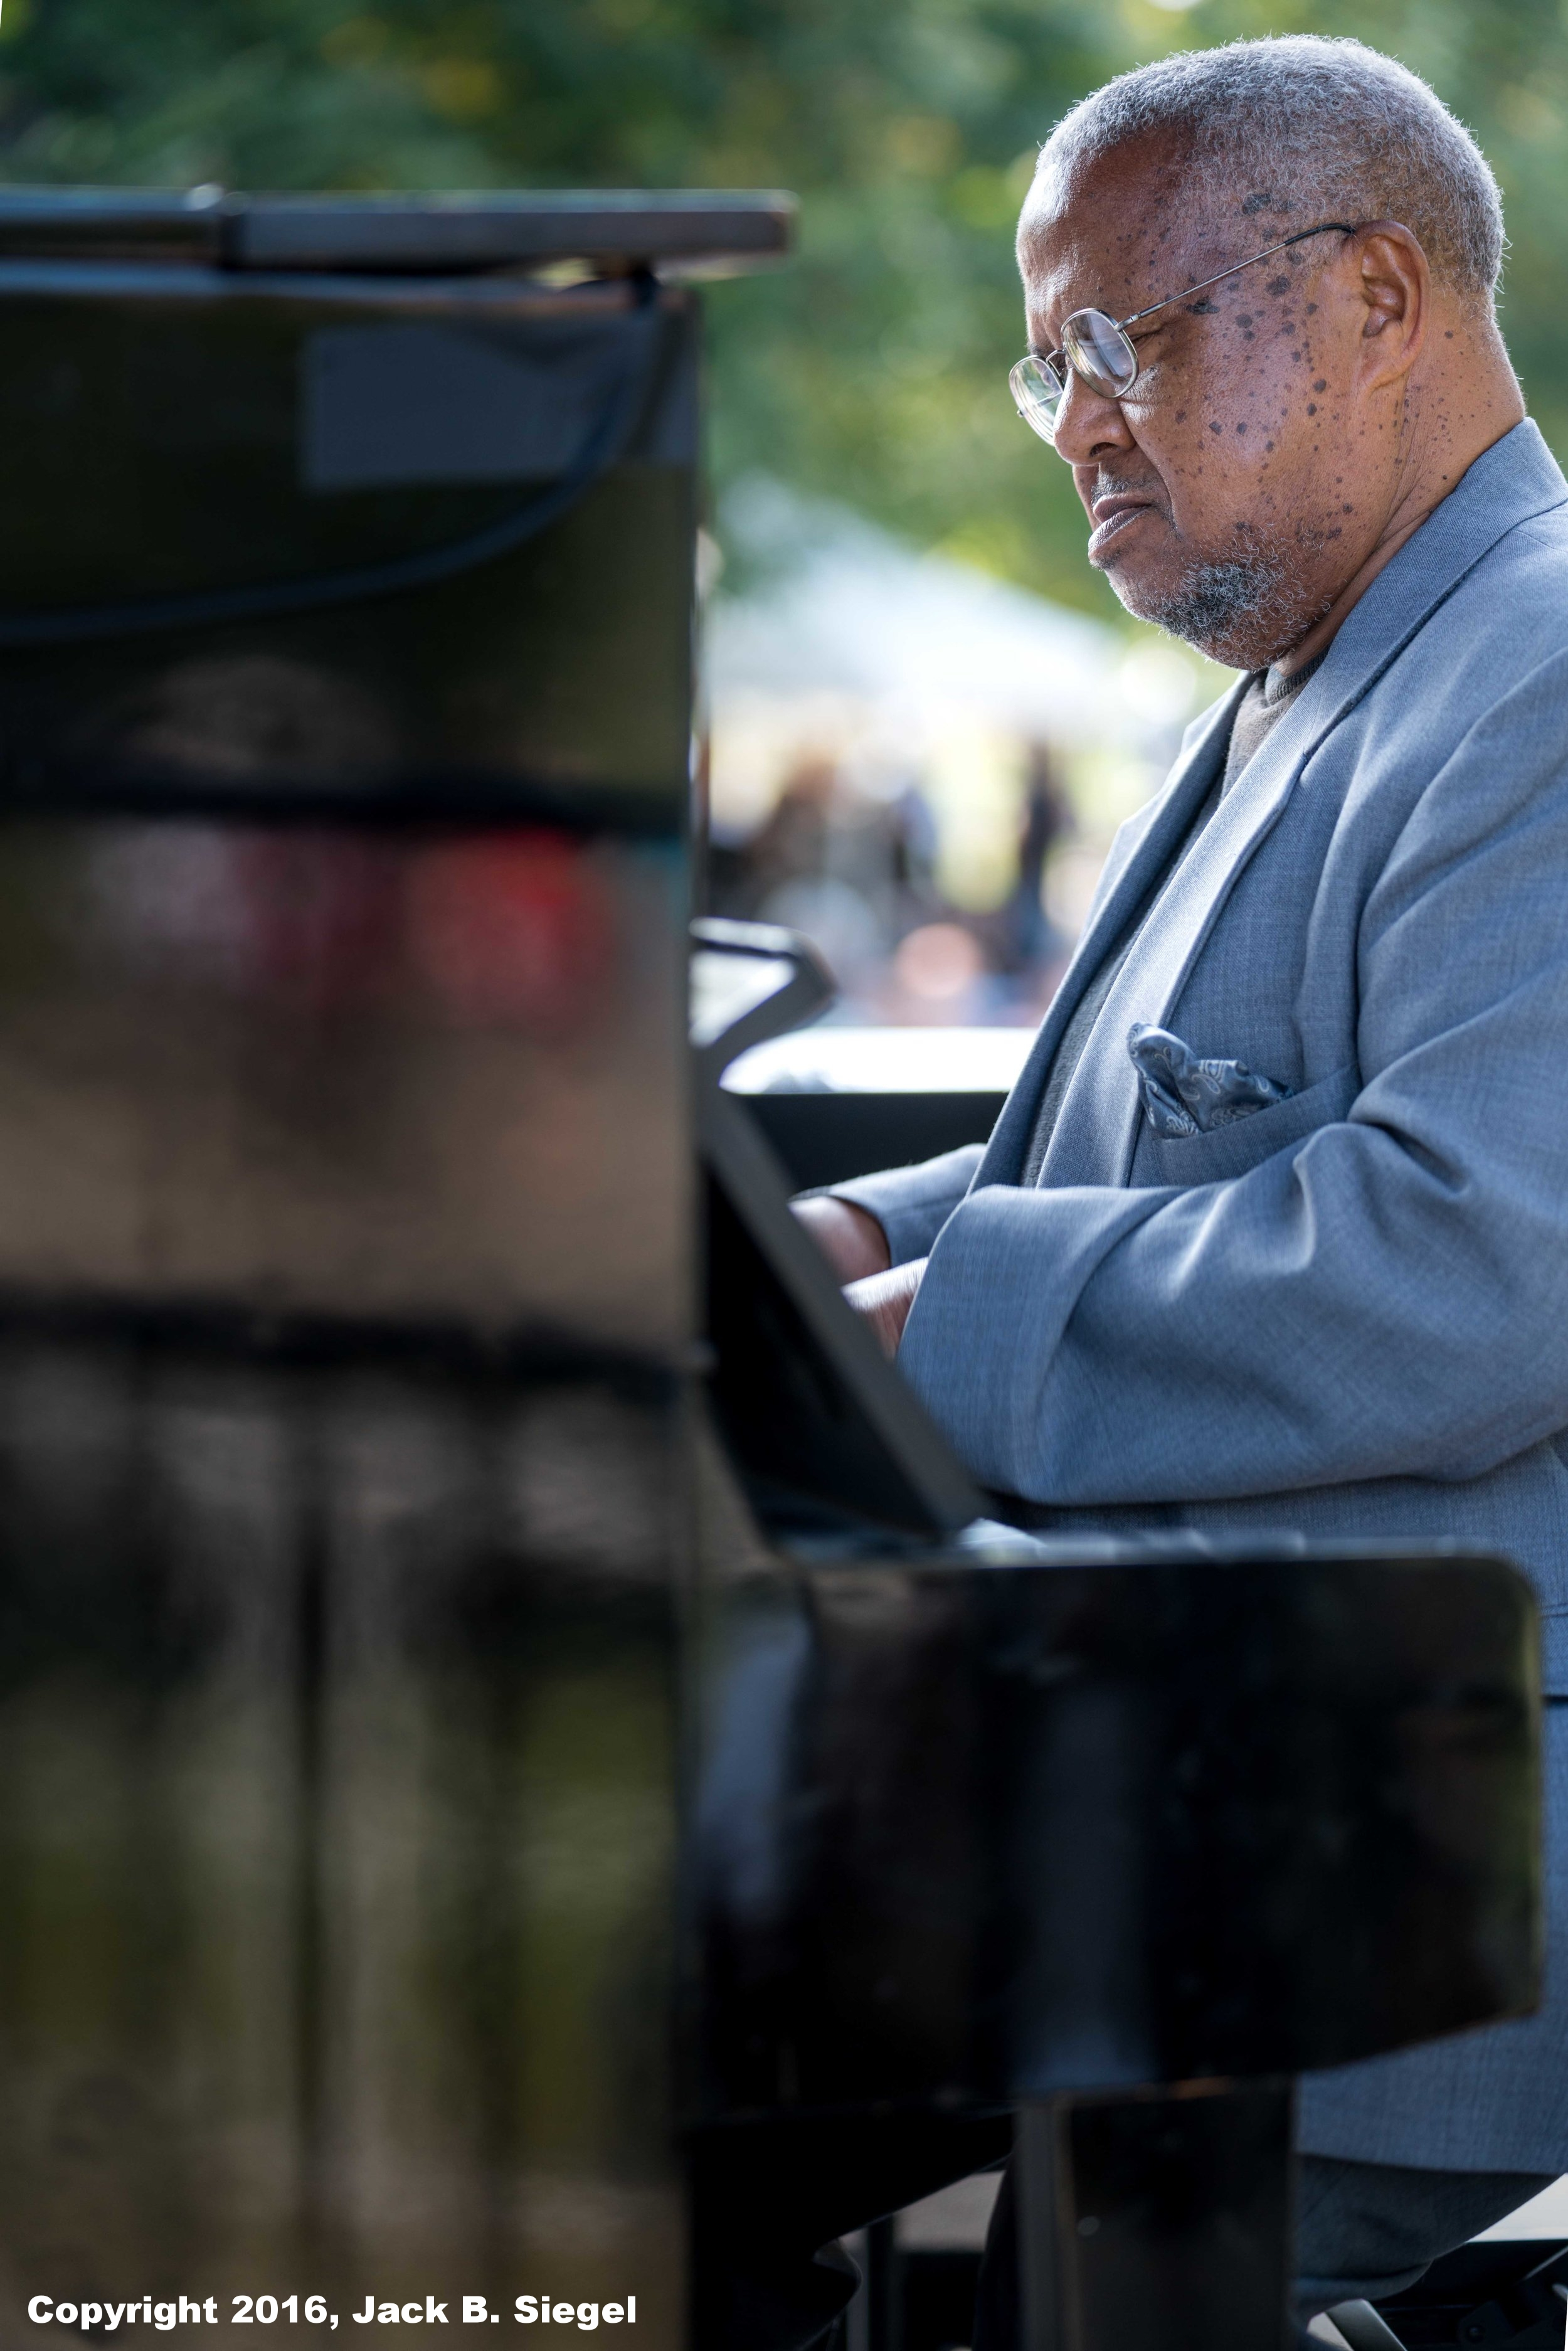 The Incomparable Willie Pickens on Piano